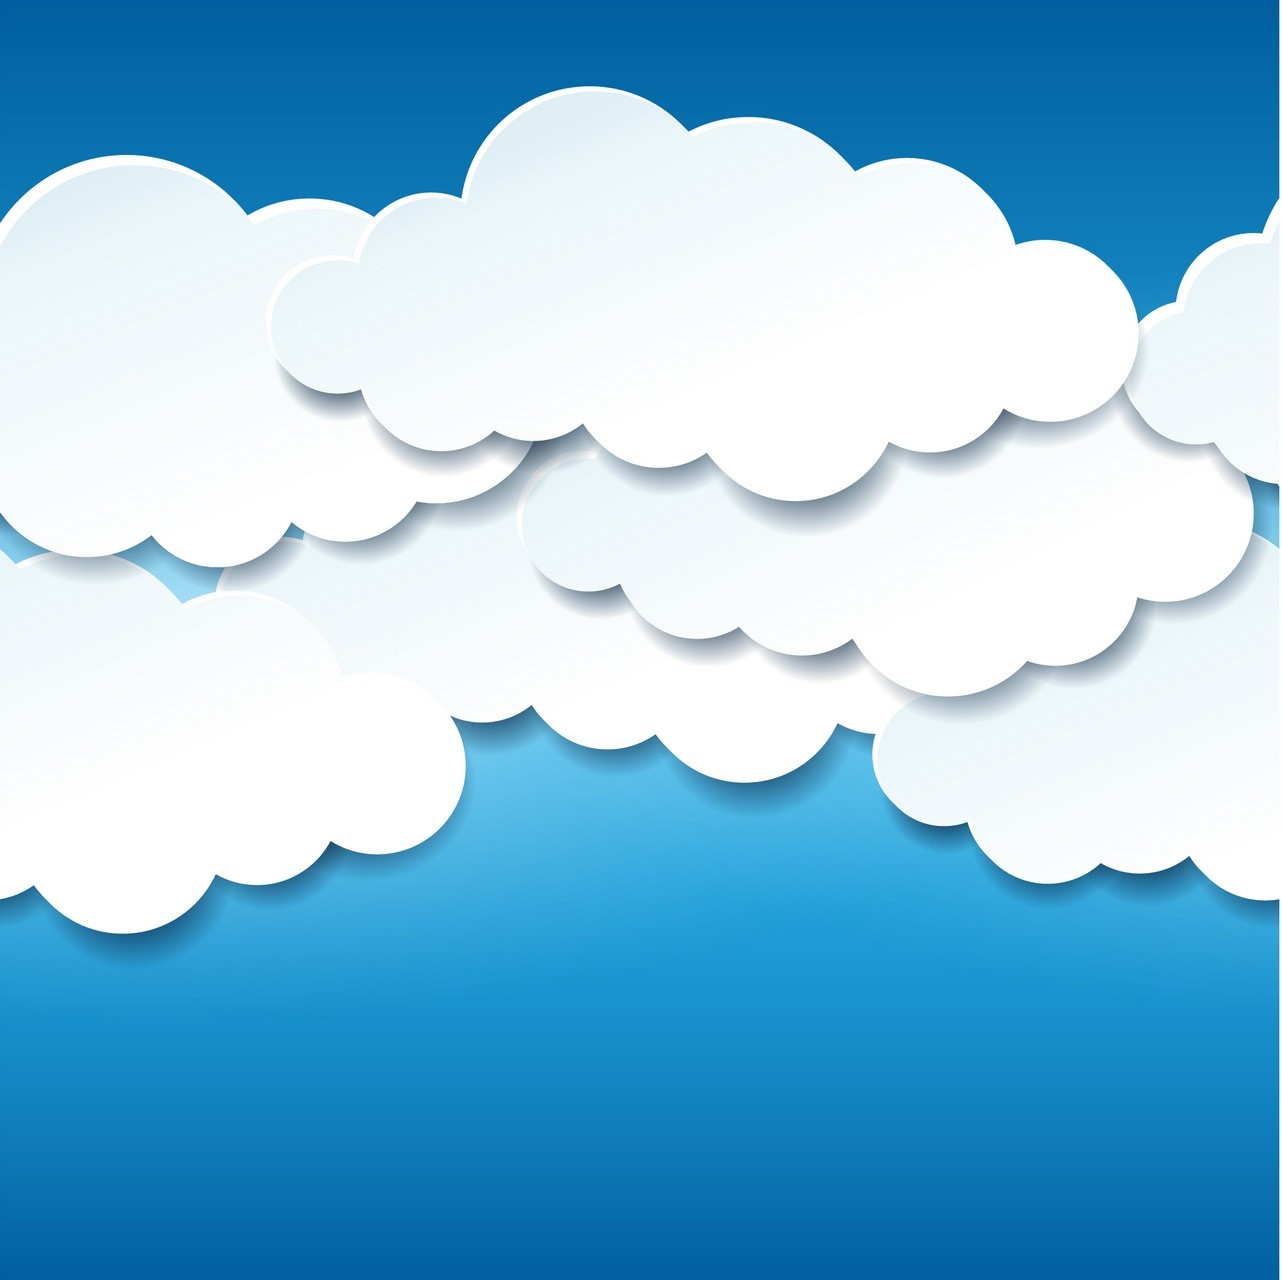 Cloud Background 01